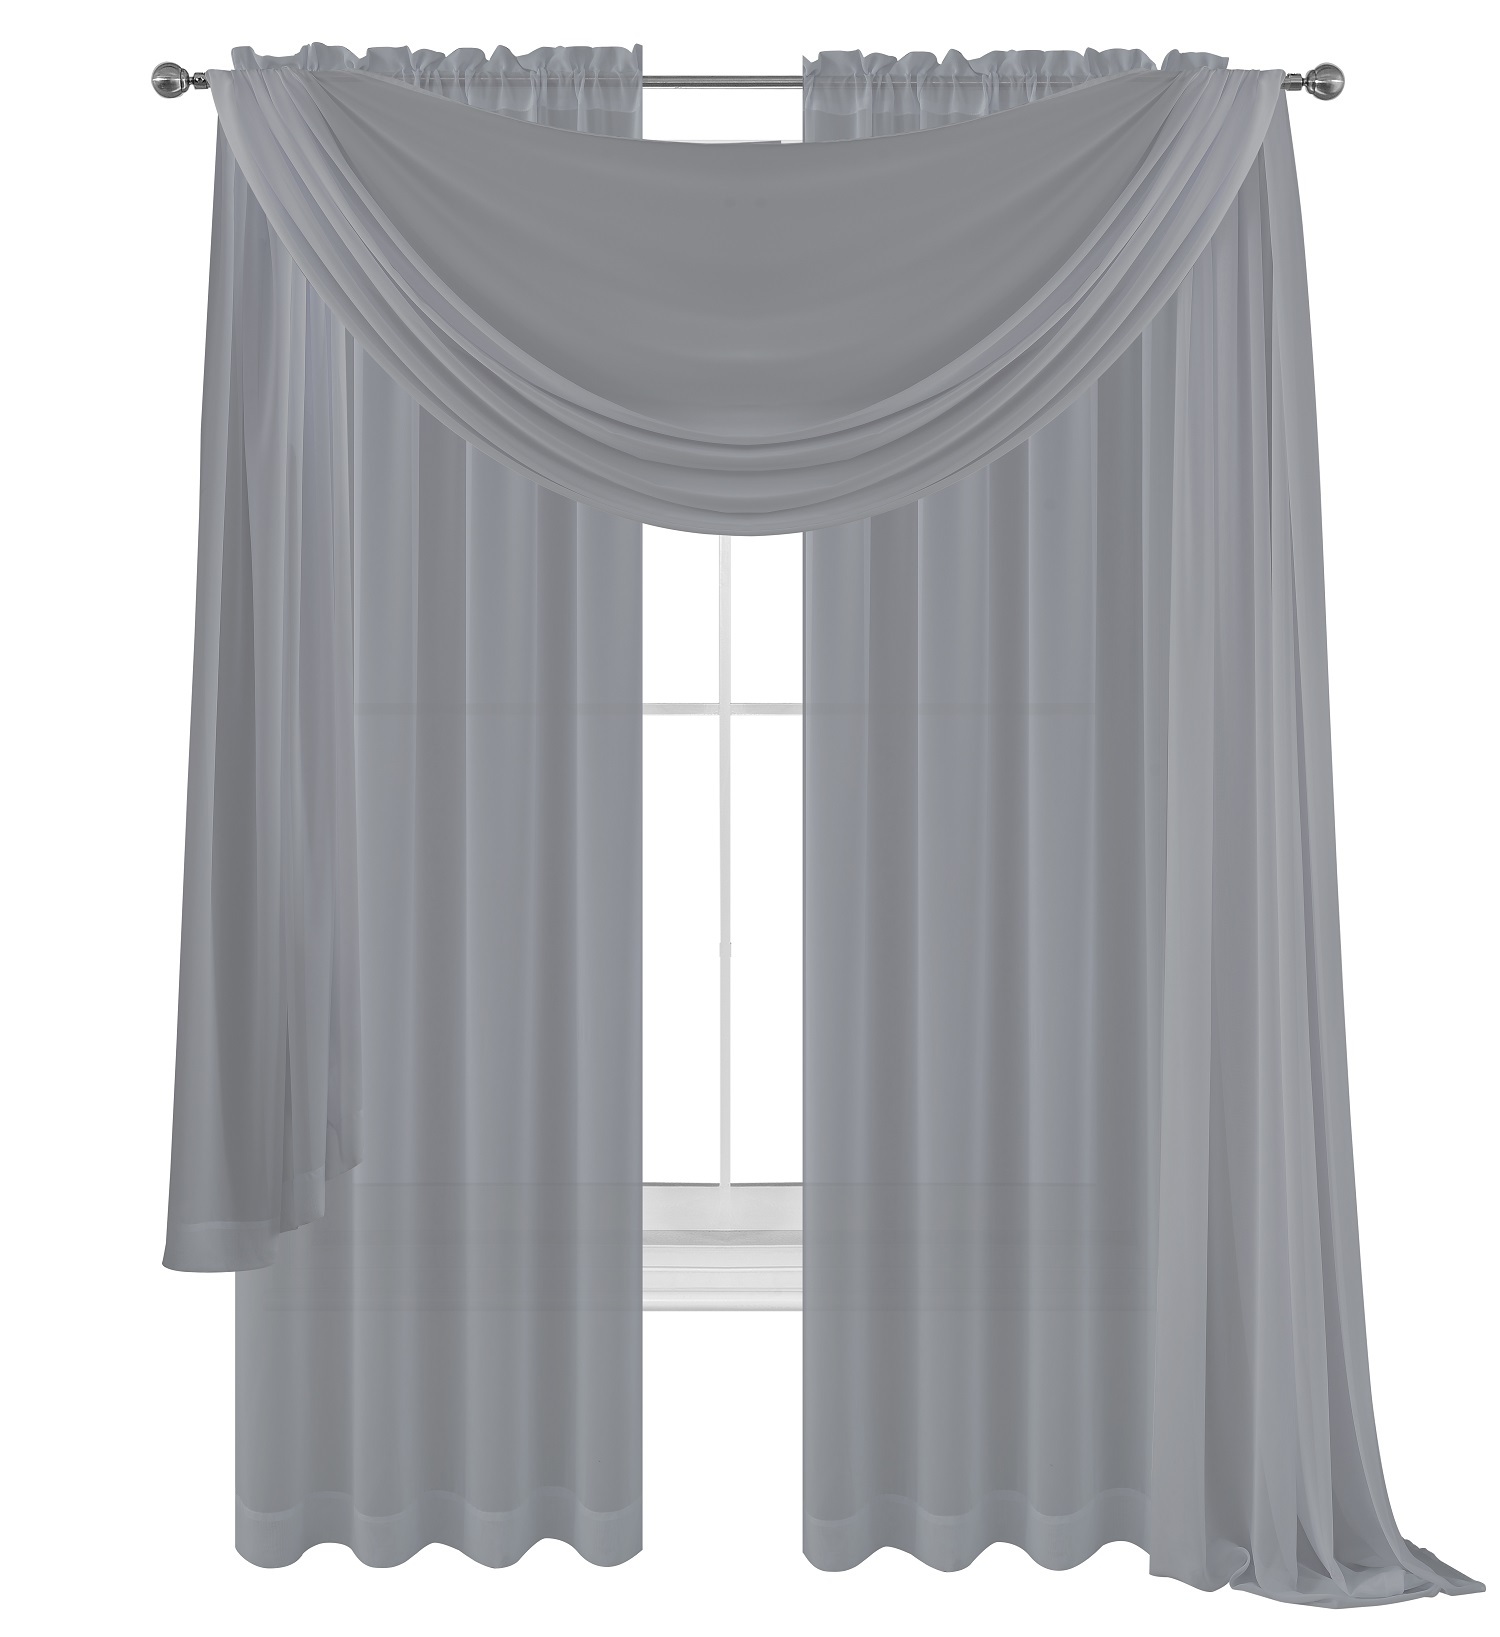 3 piece silver grey sheer voile curtain panel set 2 purple panels and 1 scarf